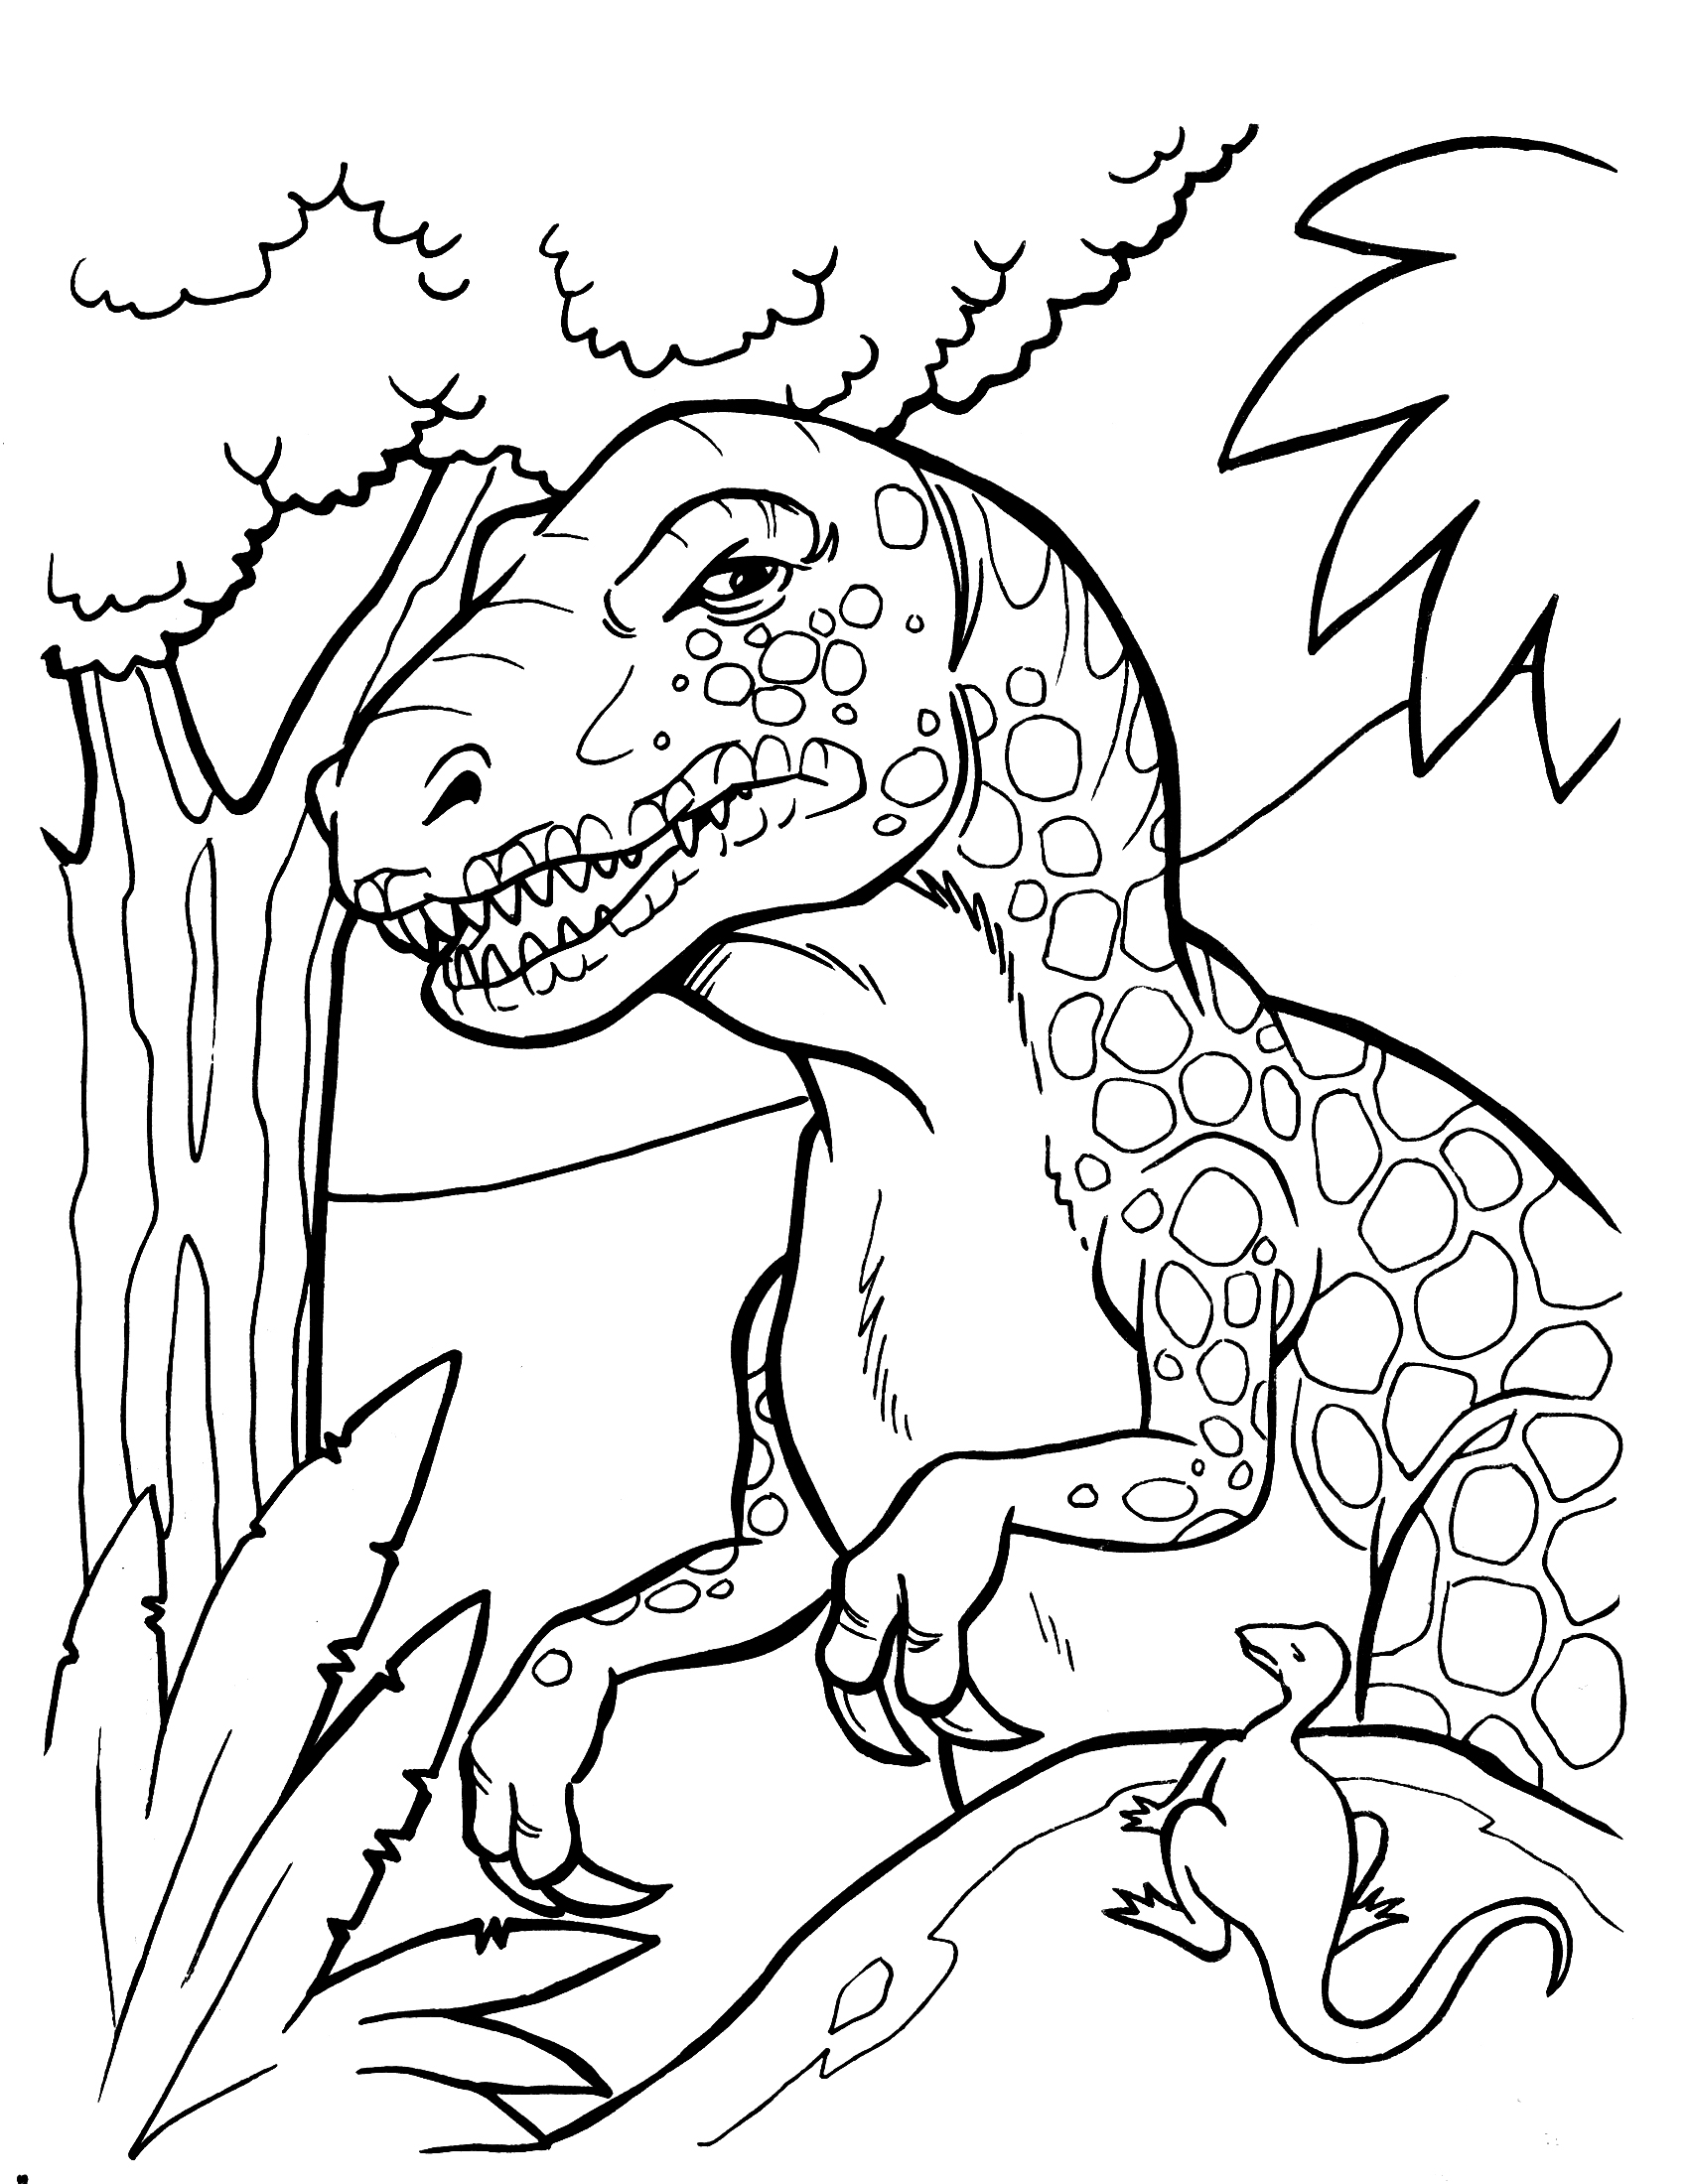 Reward Scary Dinosaur Coloring Pages Free Printable Clip and Color P Gallery Of Coloring Book and Pages Free Printable Dinosaur Habitat Coloring Printable